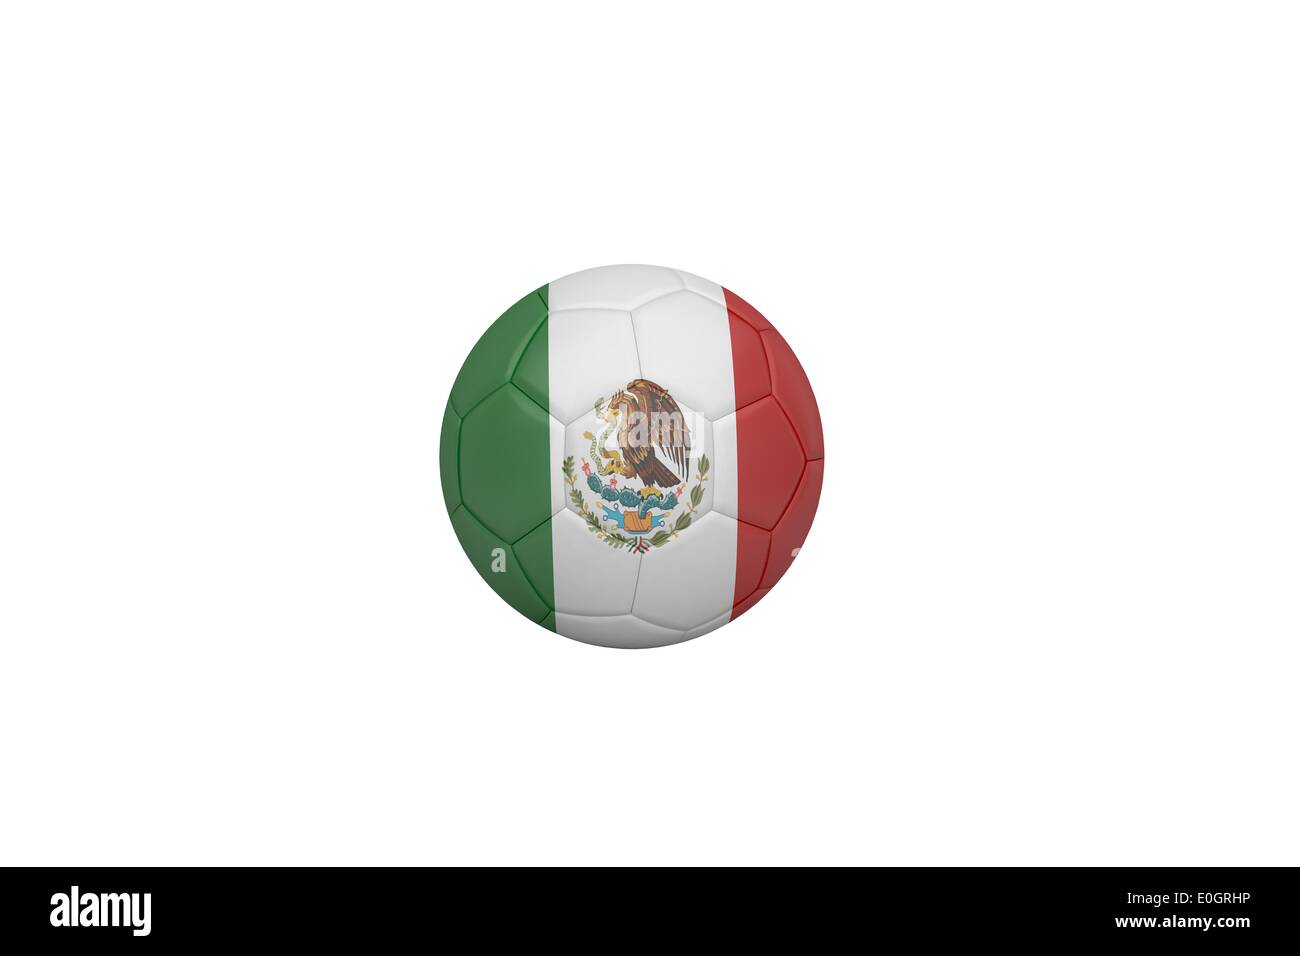 Football in mexico colours - Stock Image